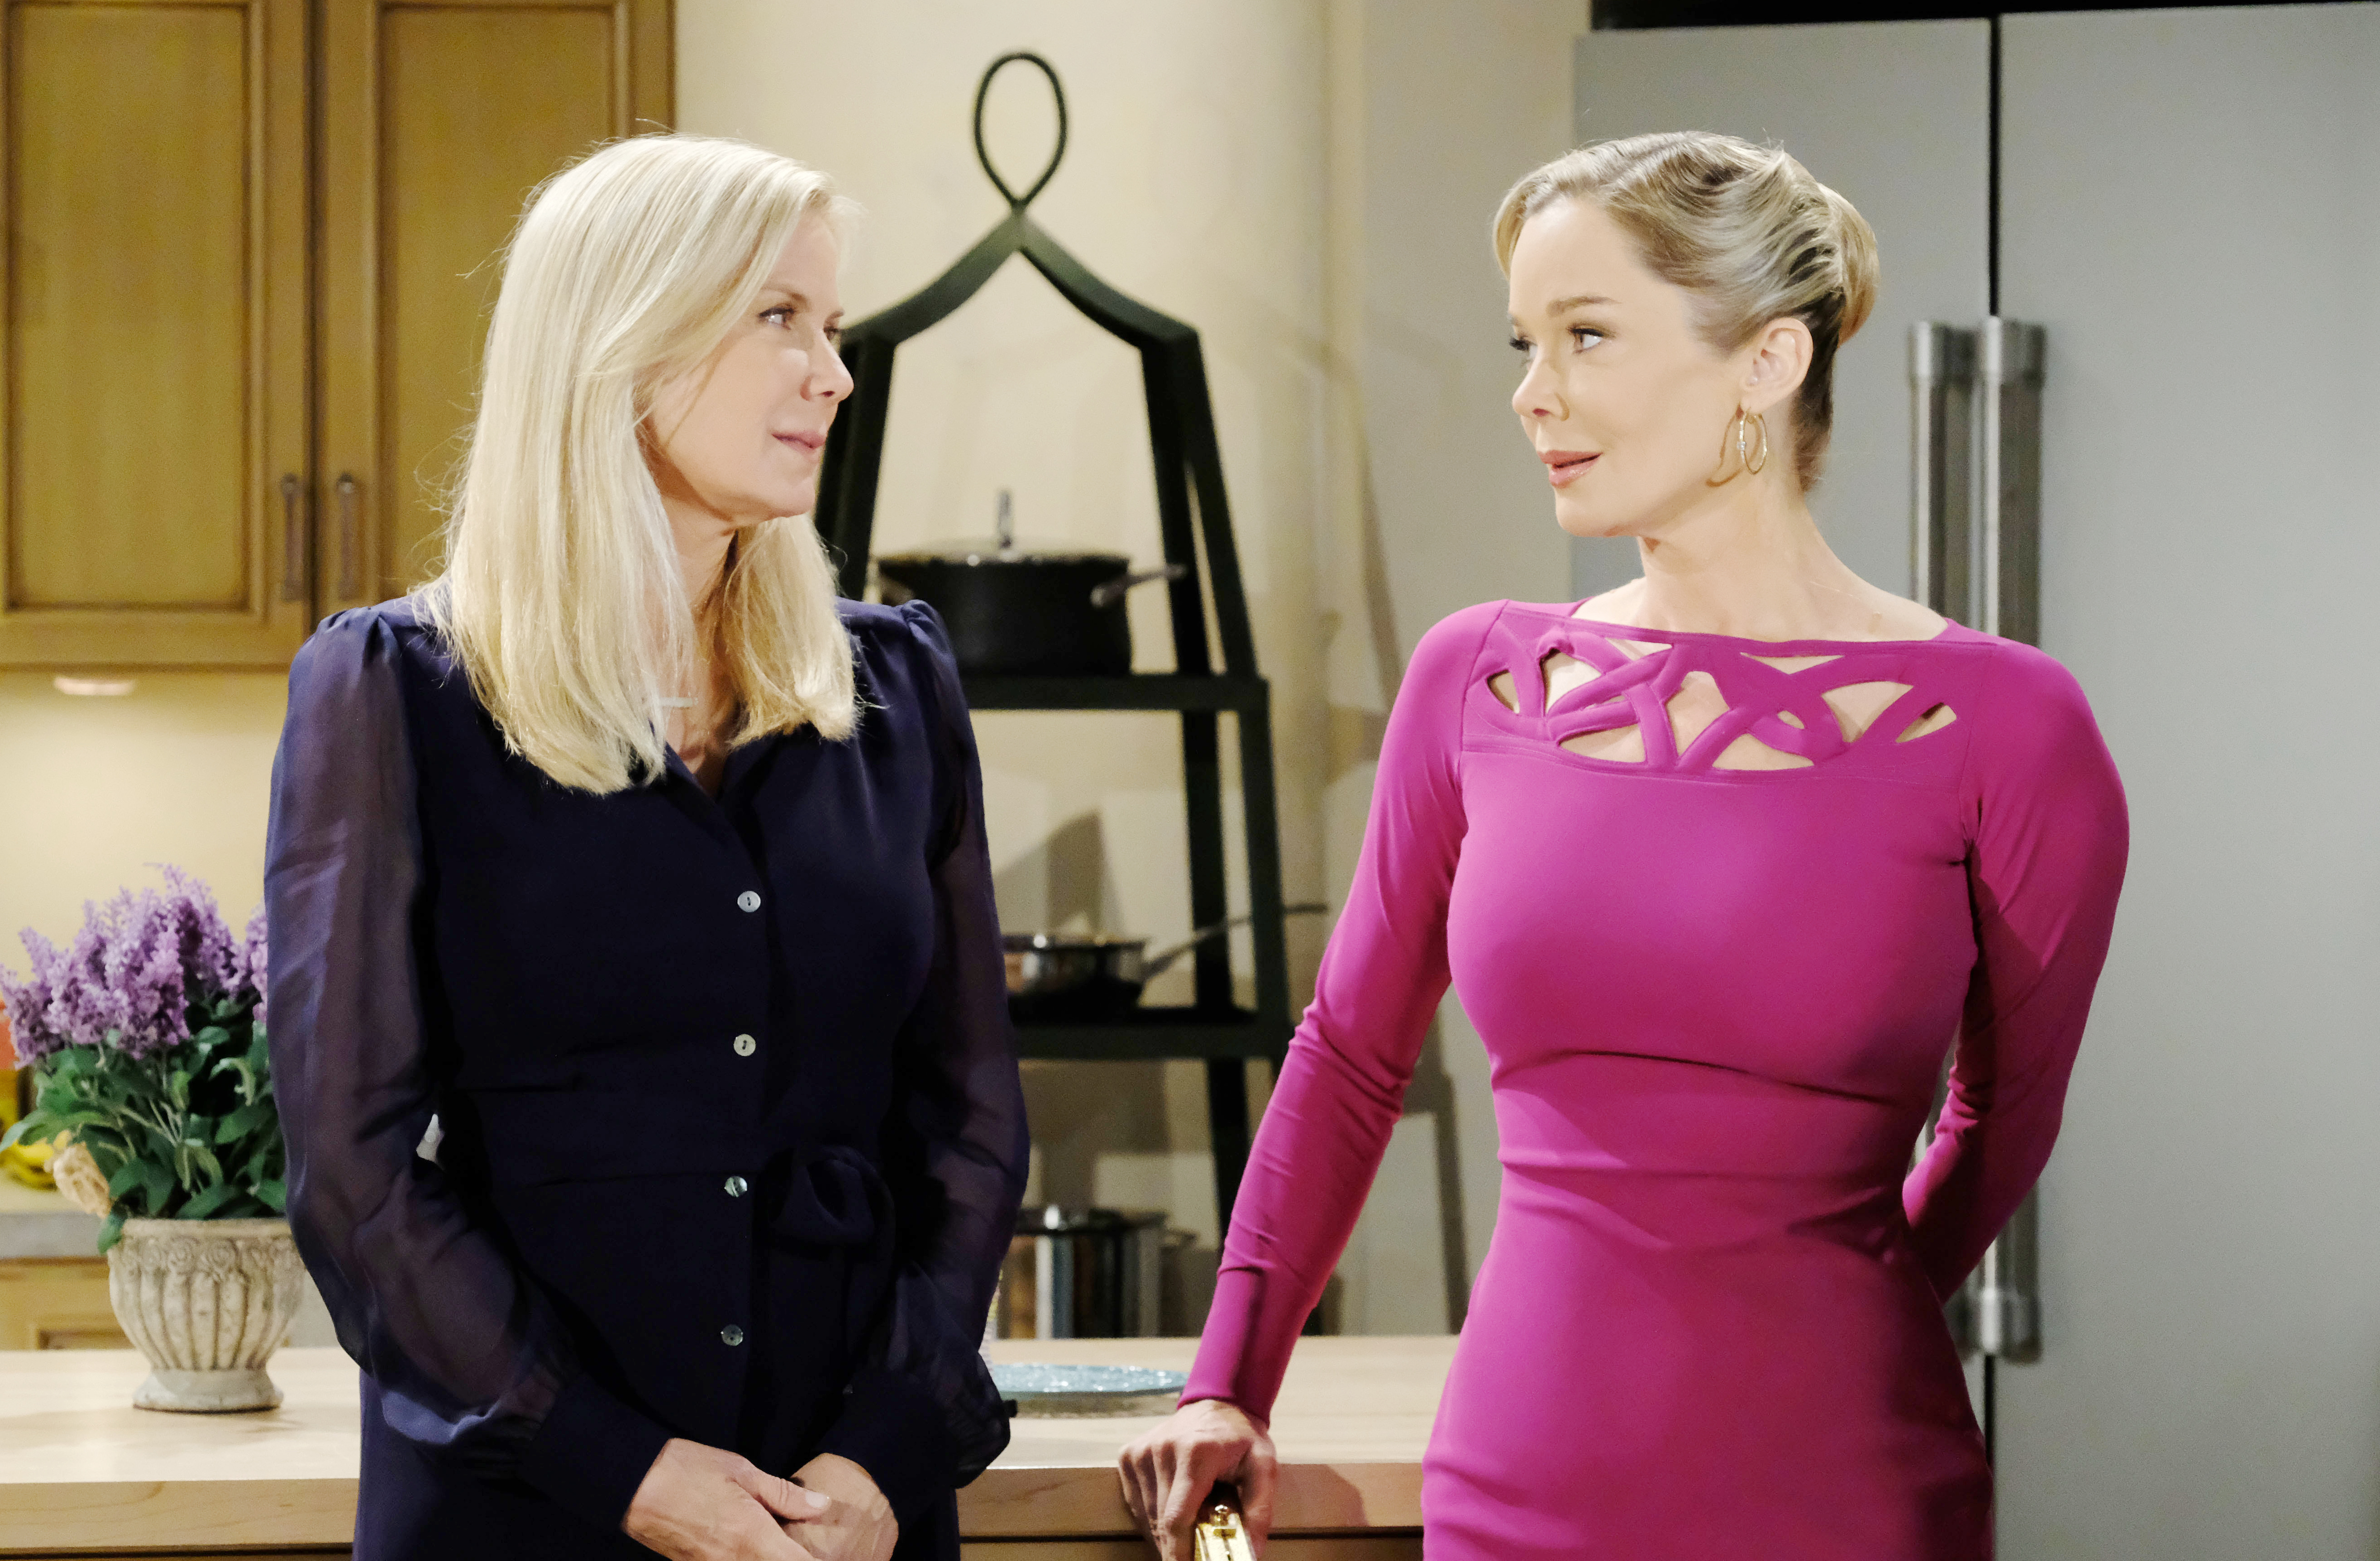 Brooke confides in Donna the reservations she is having regarding marrying Bill.